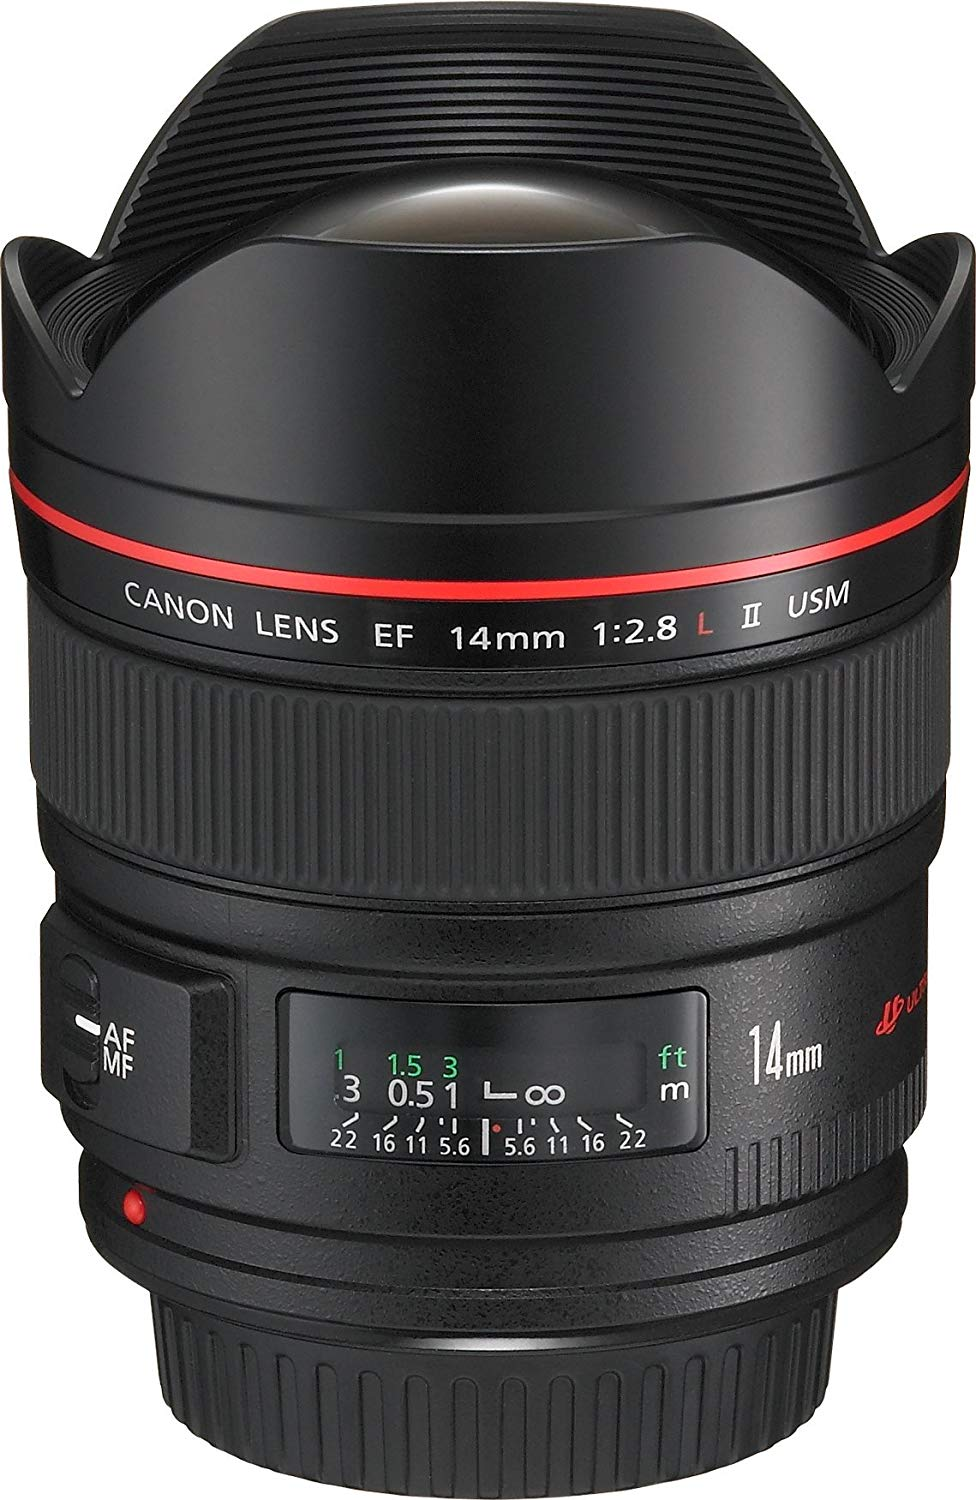 Canon EF14mm f28 L II USM with Lens Case LP1016 Cameras Accessories get best offers deals free online at buythevalue.in